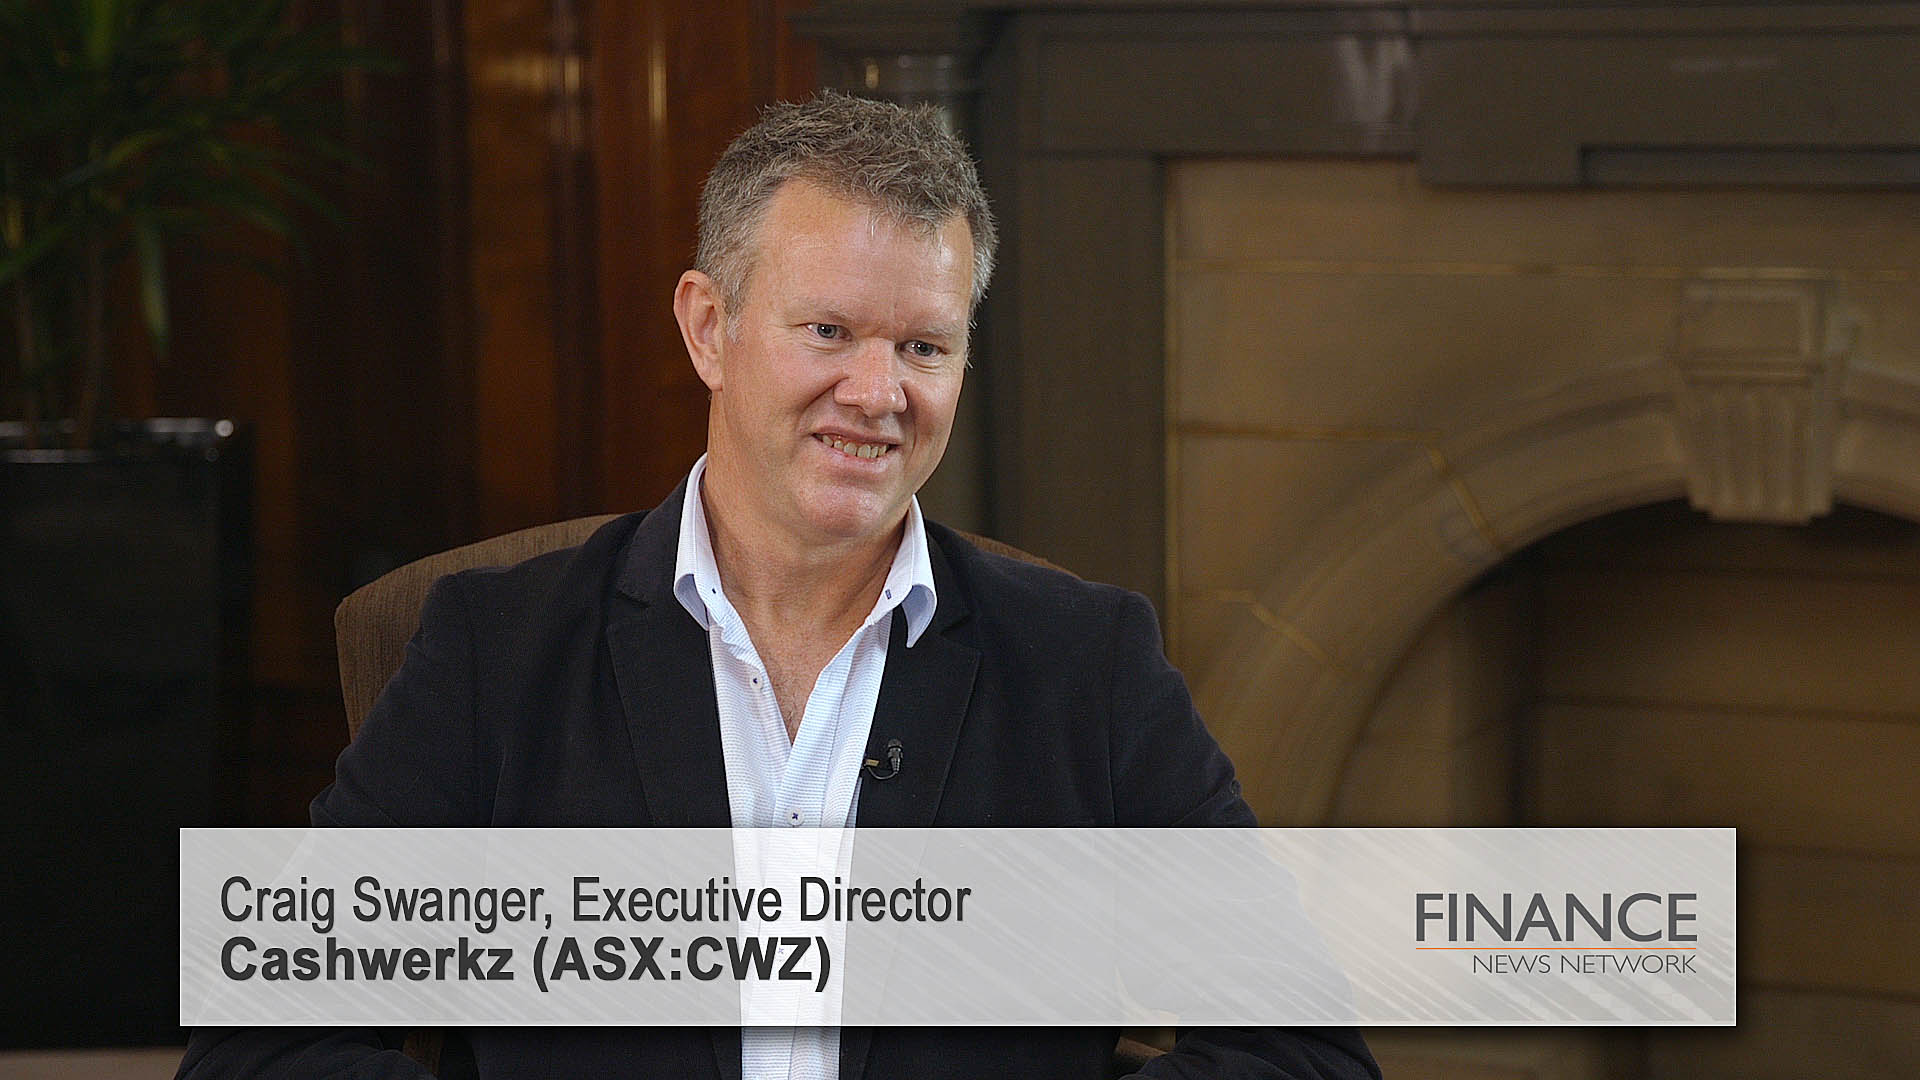 Cashwerkz (ASX:CWZ) bringing banks and investors closer together